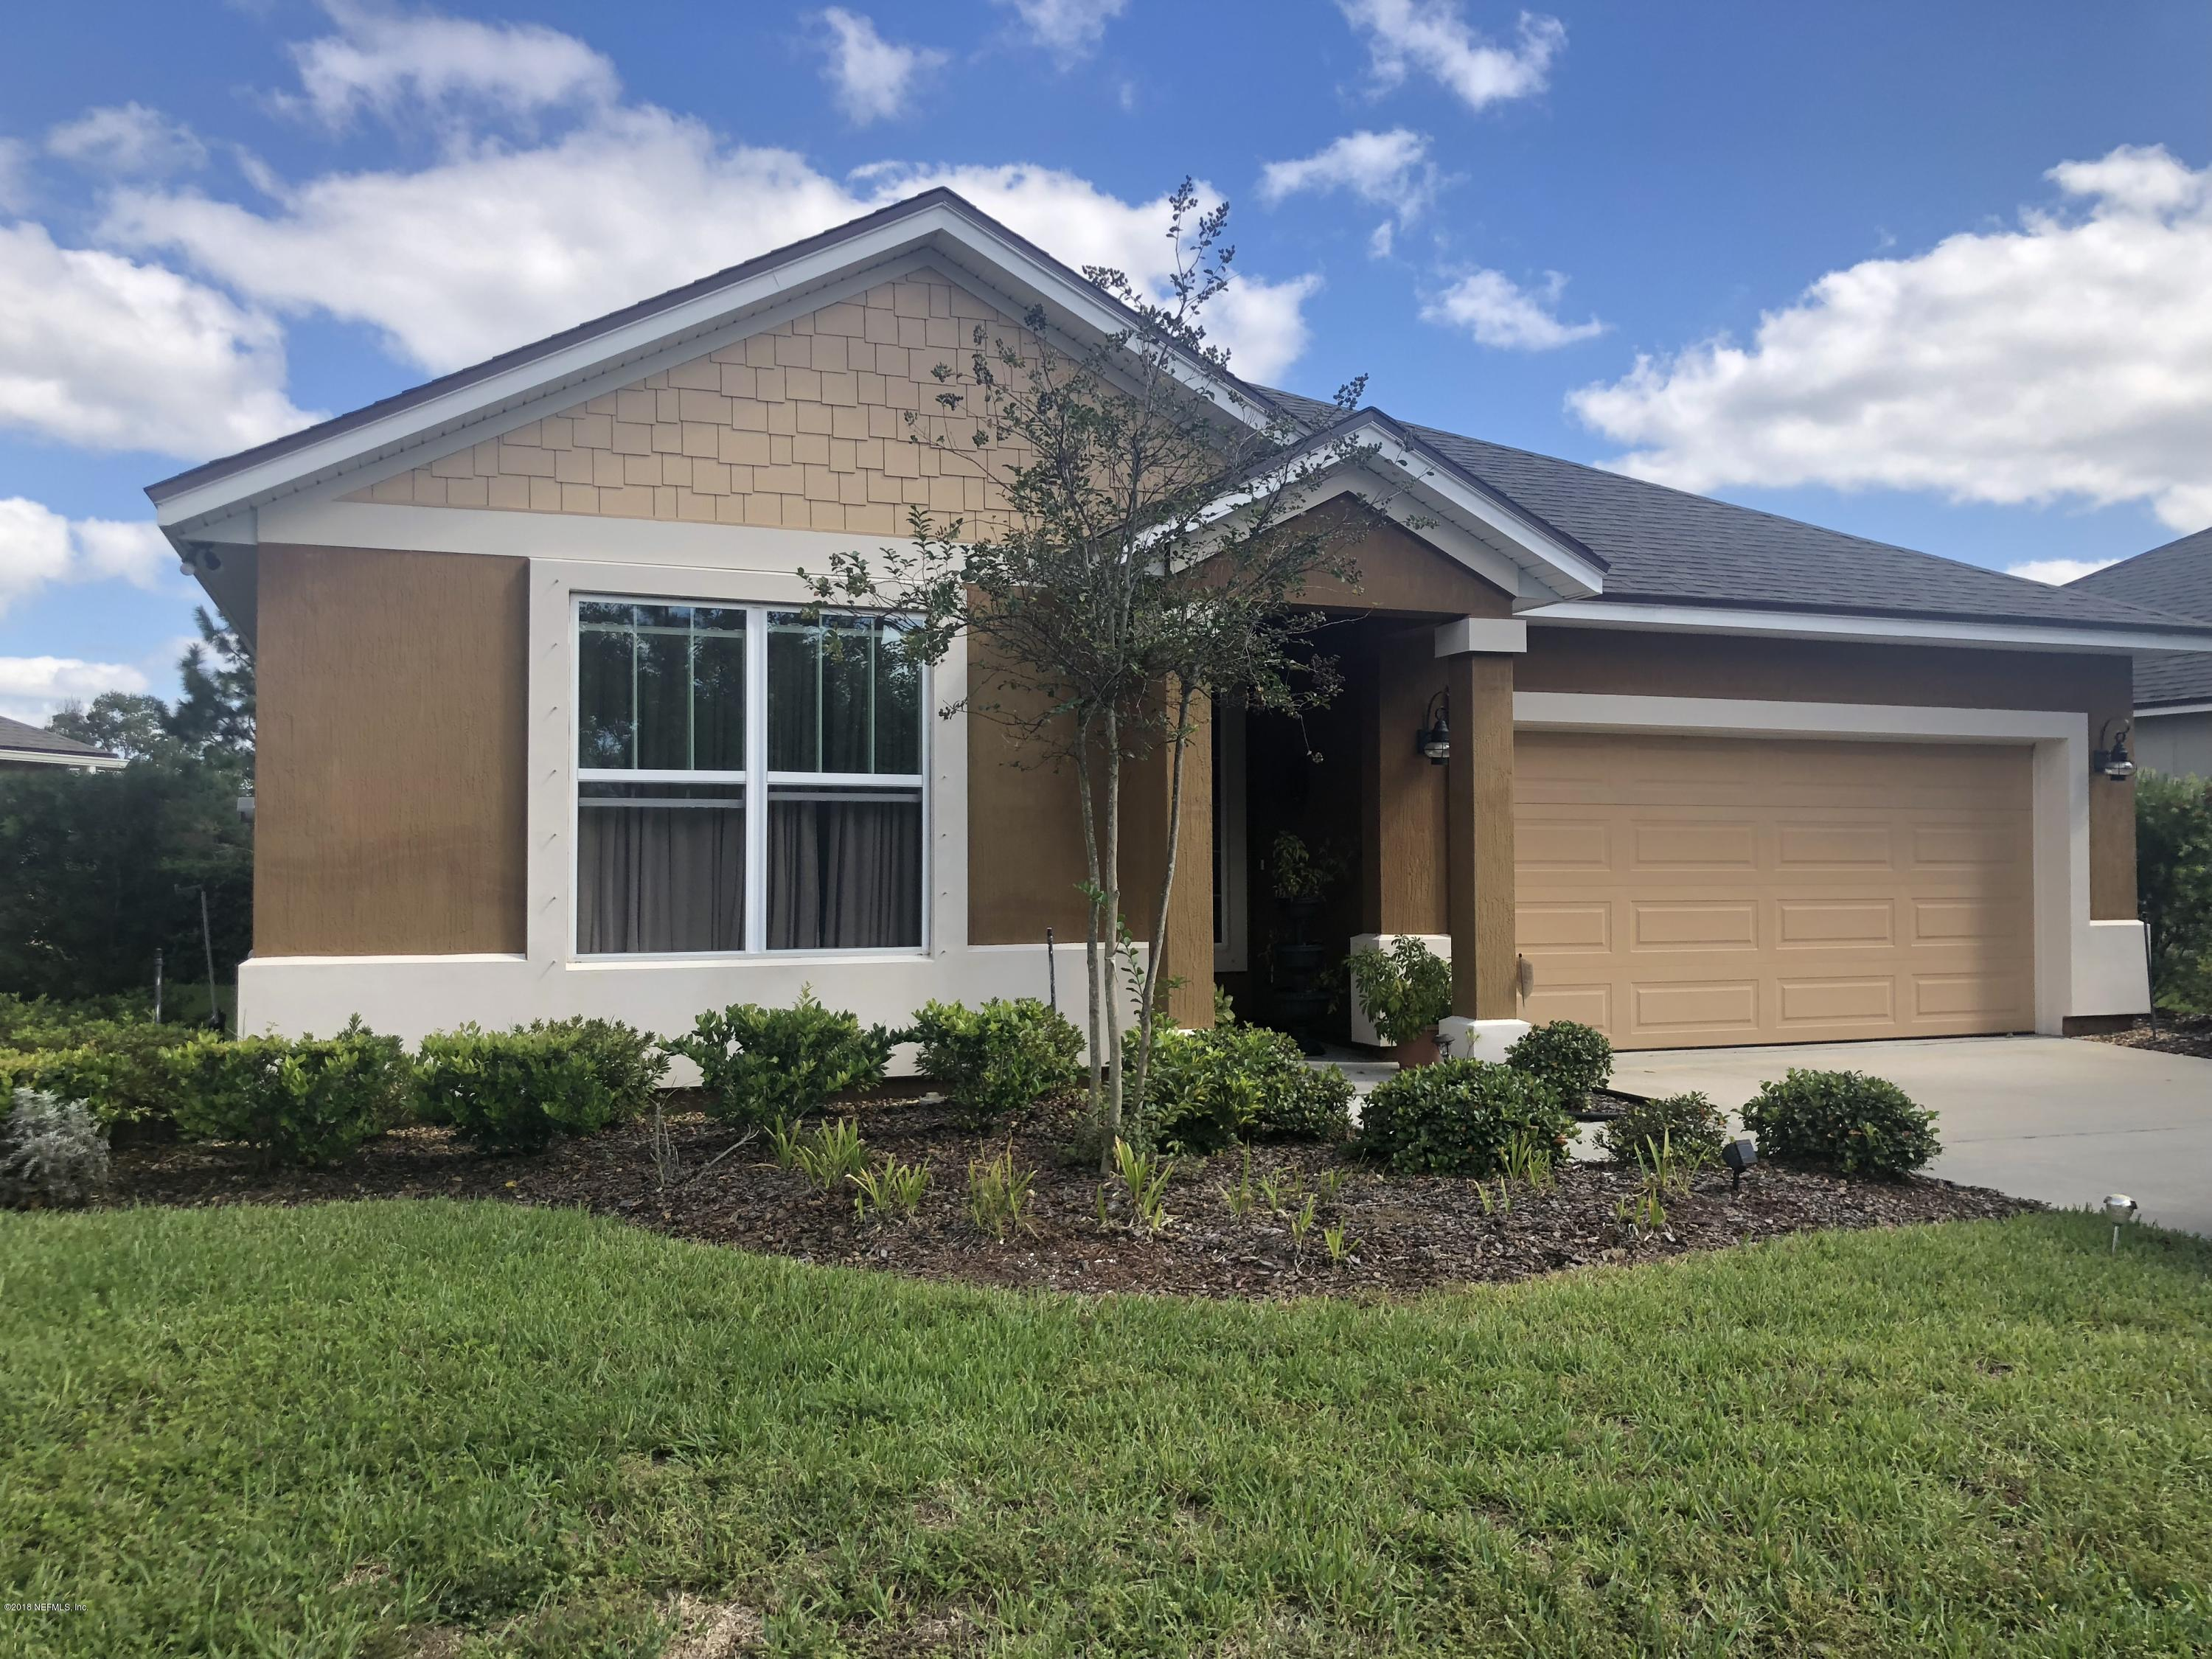 132 PLAZA DEL RIO, ST AUGUSTINE, FLORIDA 32084, 3 Bedrooms Bedrooms, ,2 BathroomsBathrooms,Residential - single family,For sale,PLAZA DEL RIO,965252